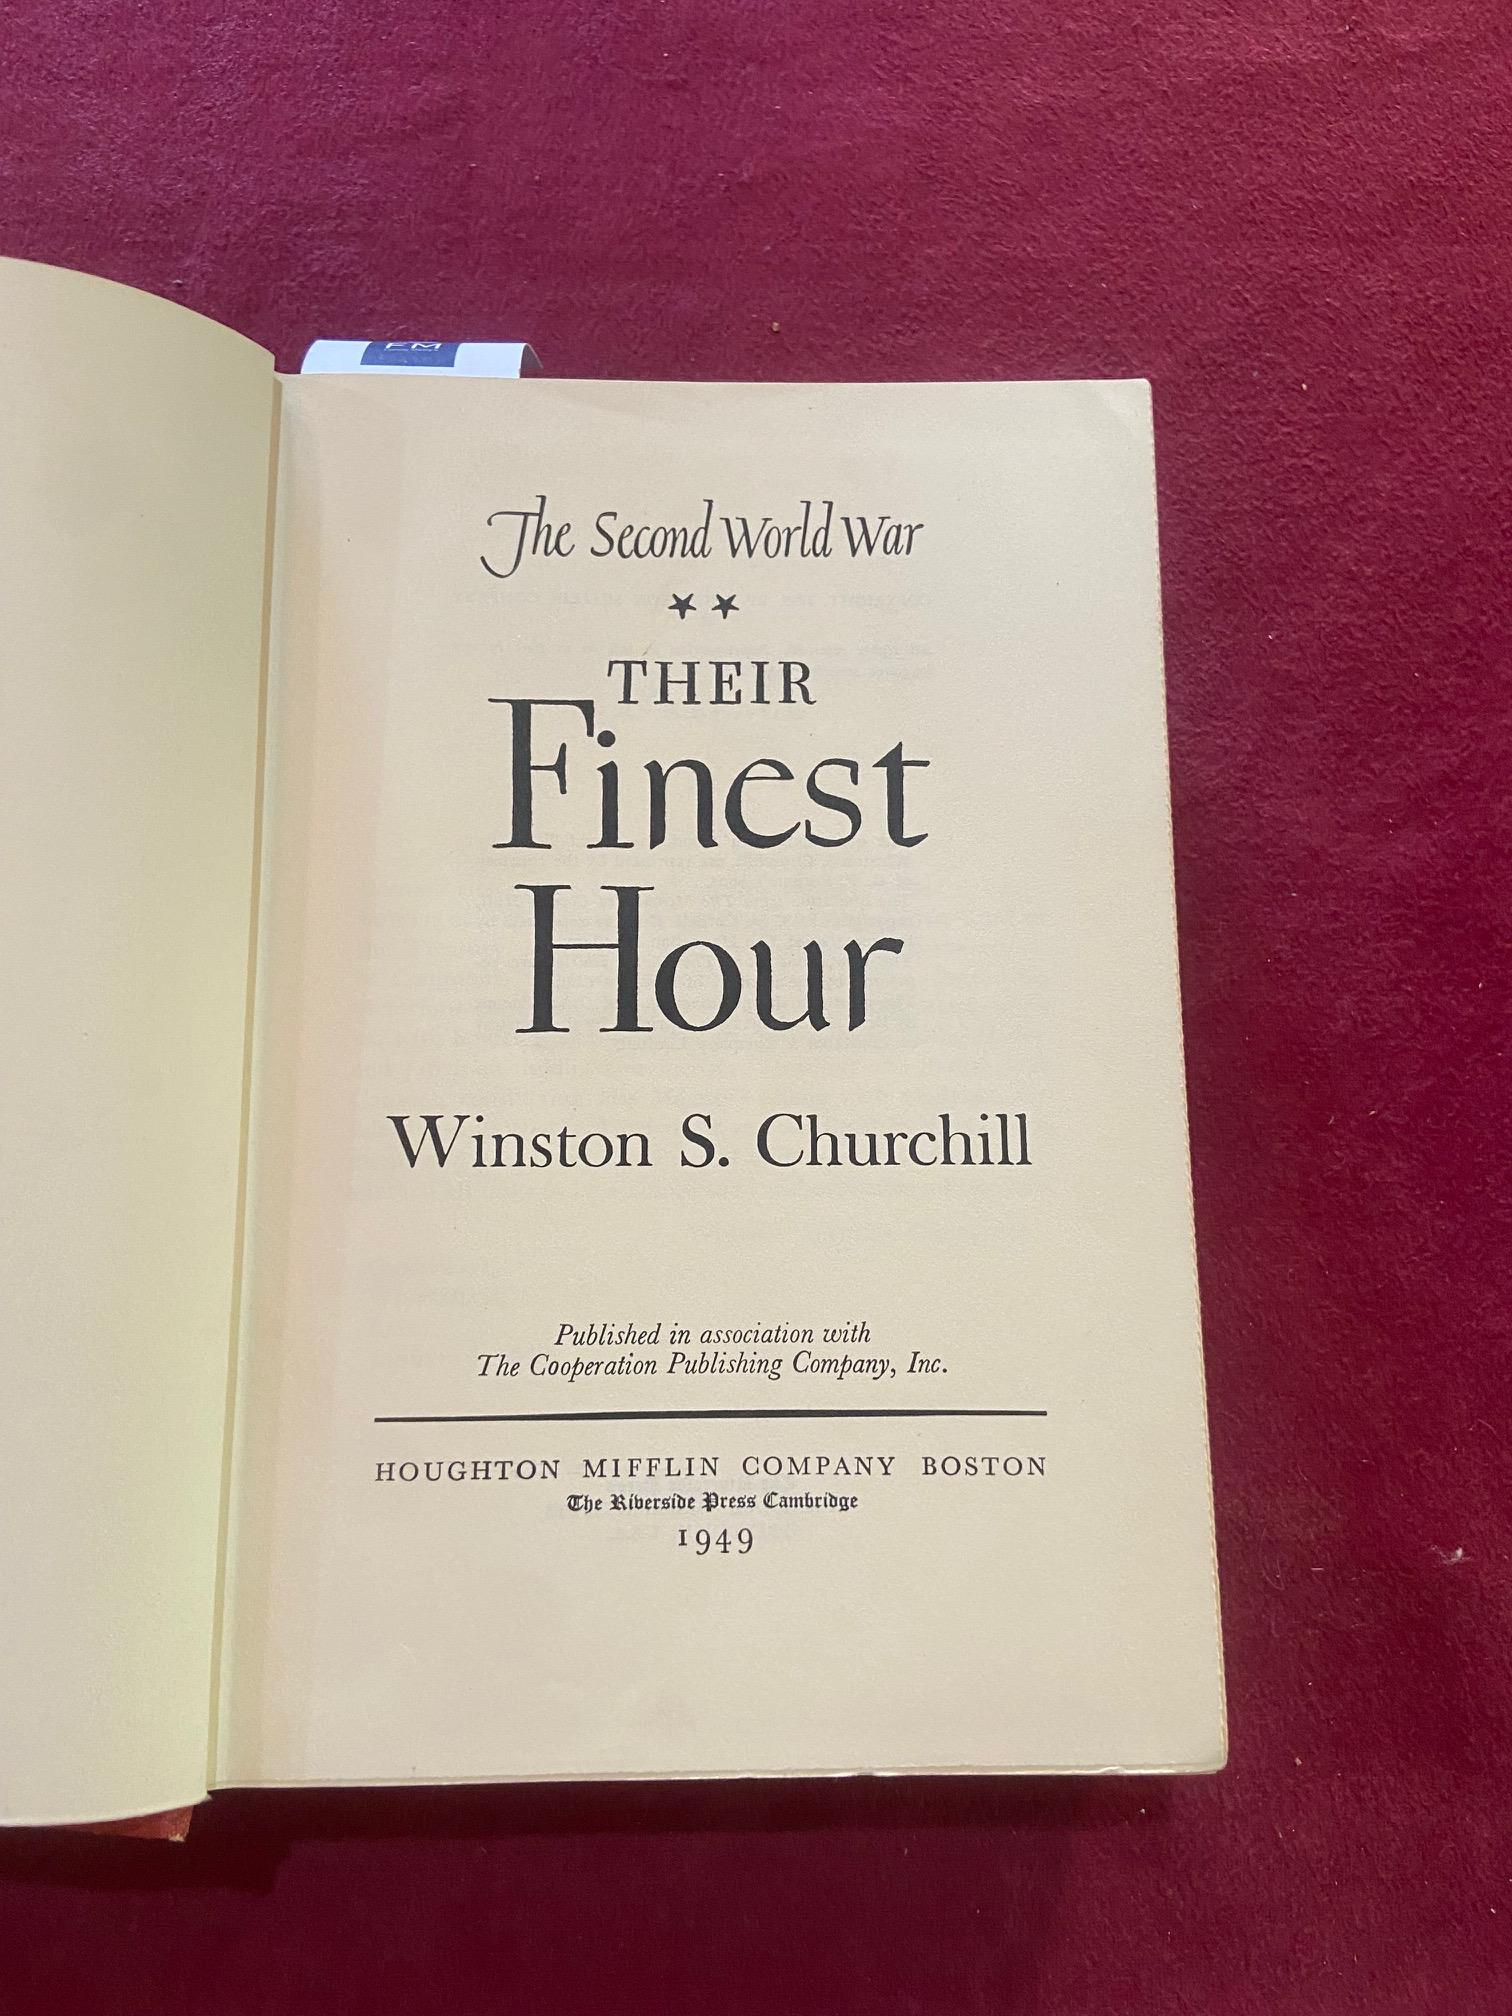 Signed by the Authorÿ Churchill (Winston S.)ÿTheir Finest Hour, Second World War, Vol. II only, - Image 17 of 22